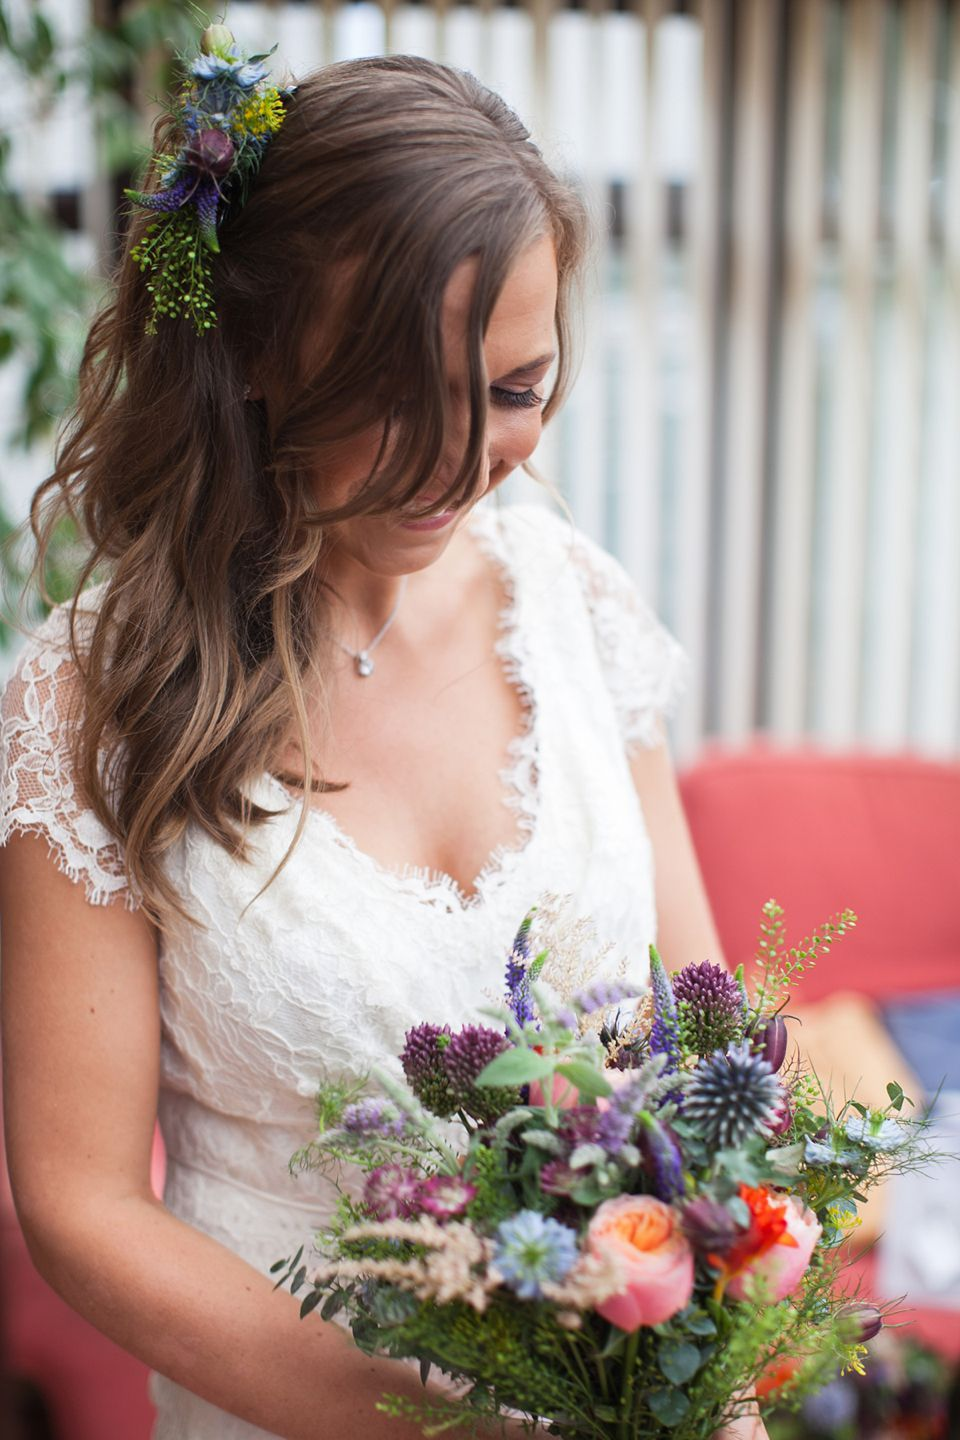 Design your own wedding dress scotland  A Laidback and Rustic Style Humanist Wedding in Scotland  Wedding